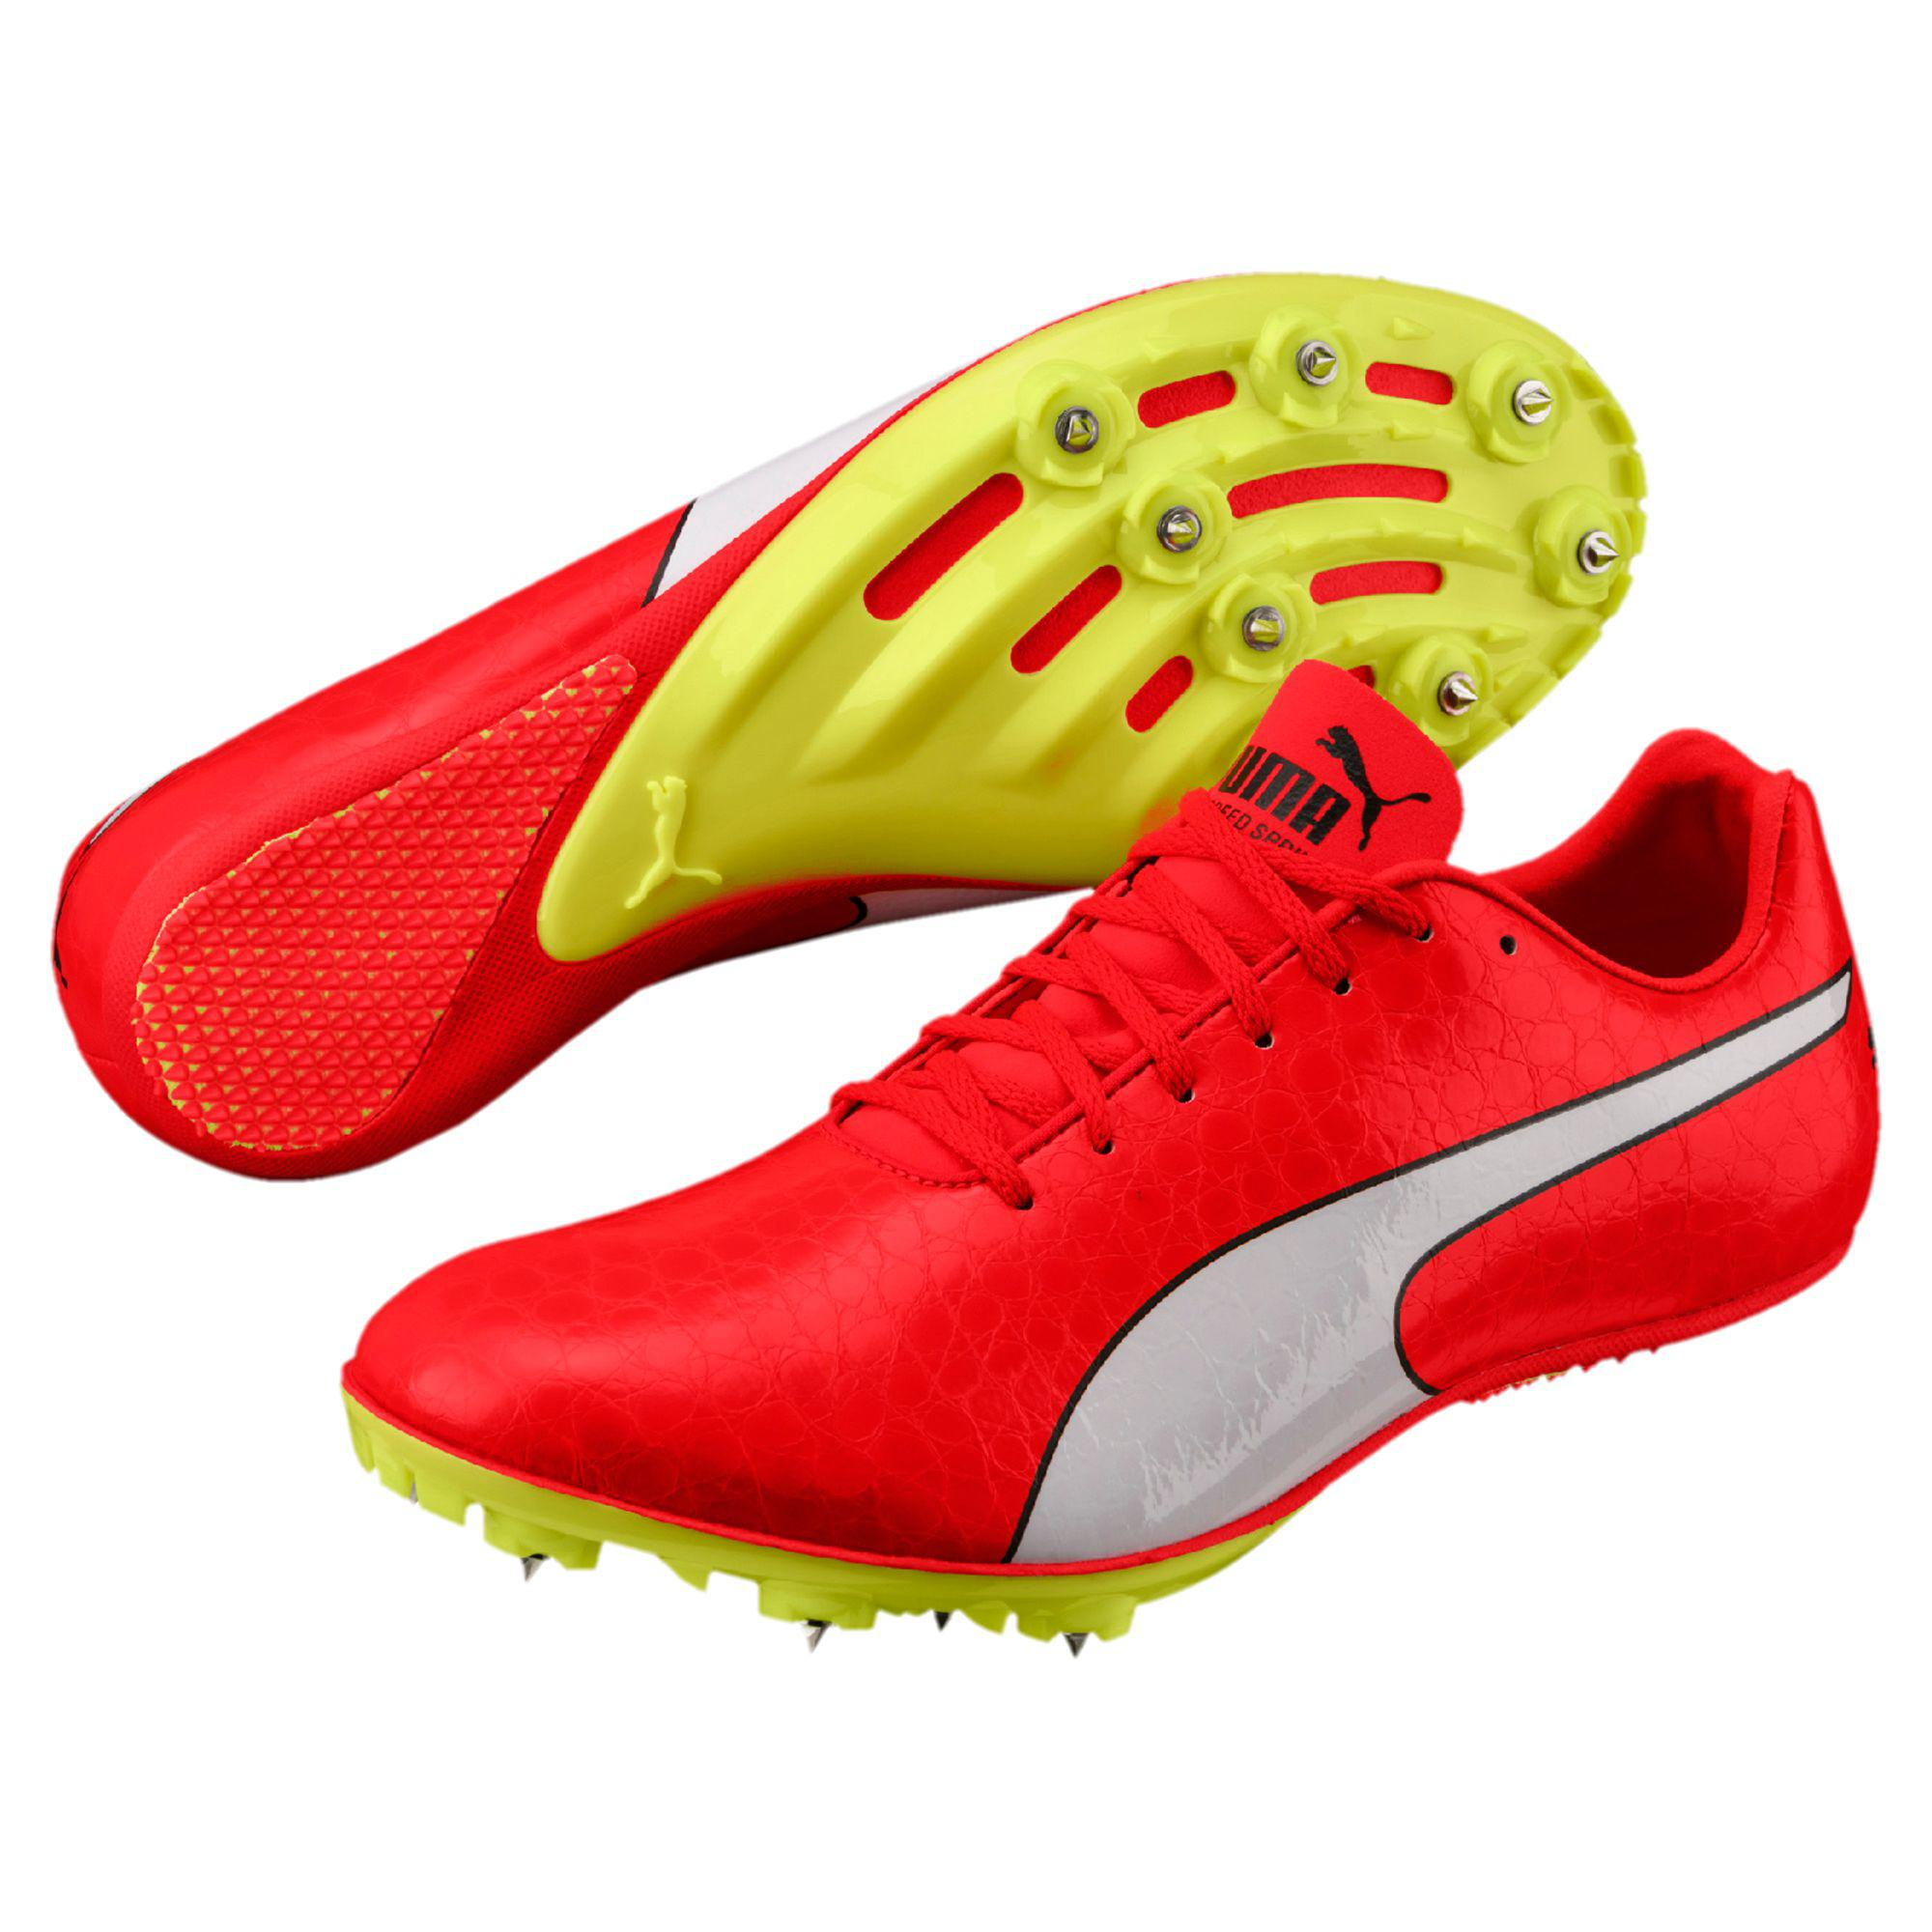 a1adaf78628be4 Lyst - PUMA Evospeed Sprint 8 Men s Track Spikes in Red for Men